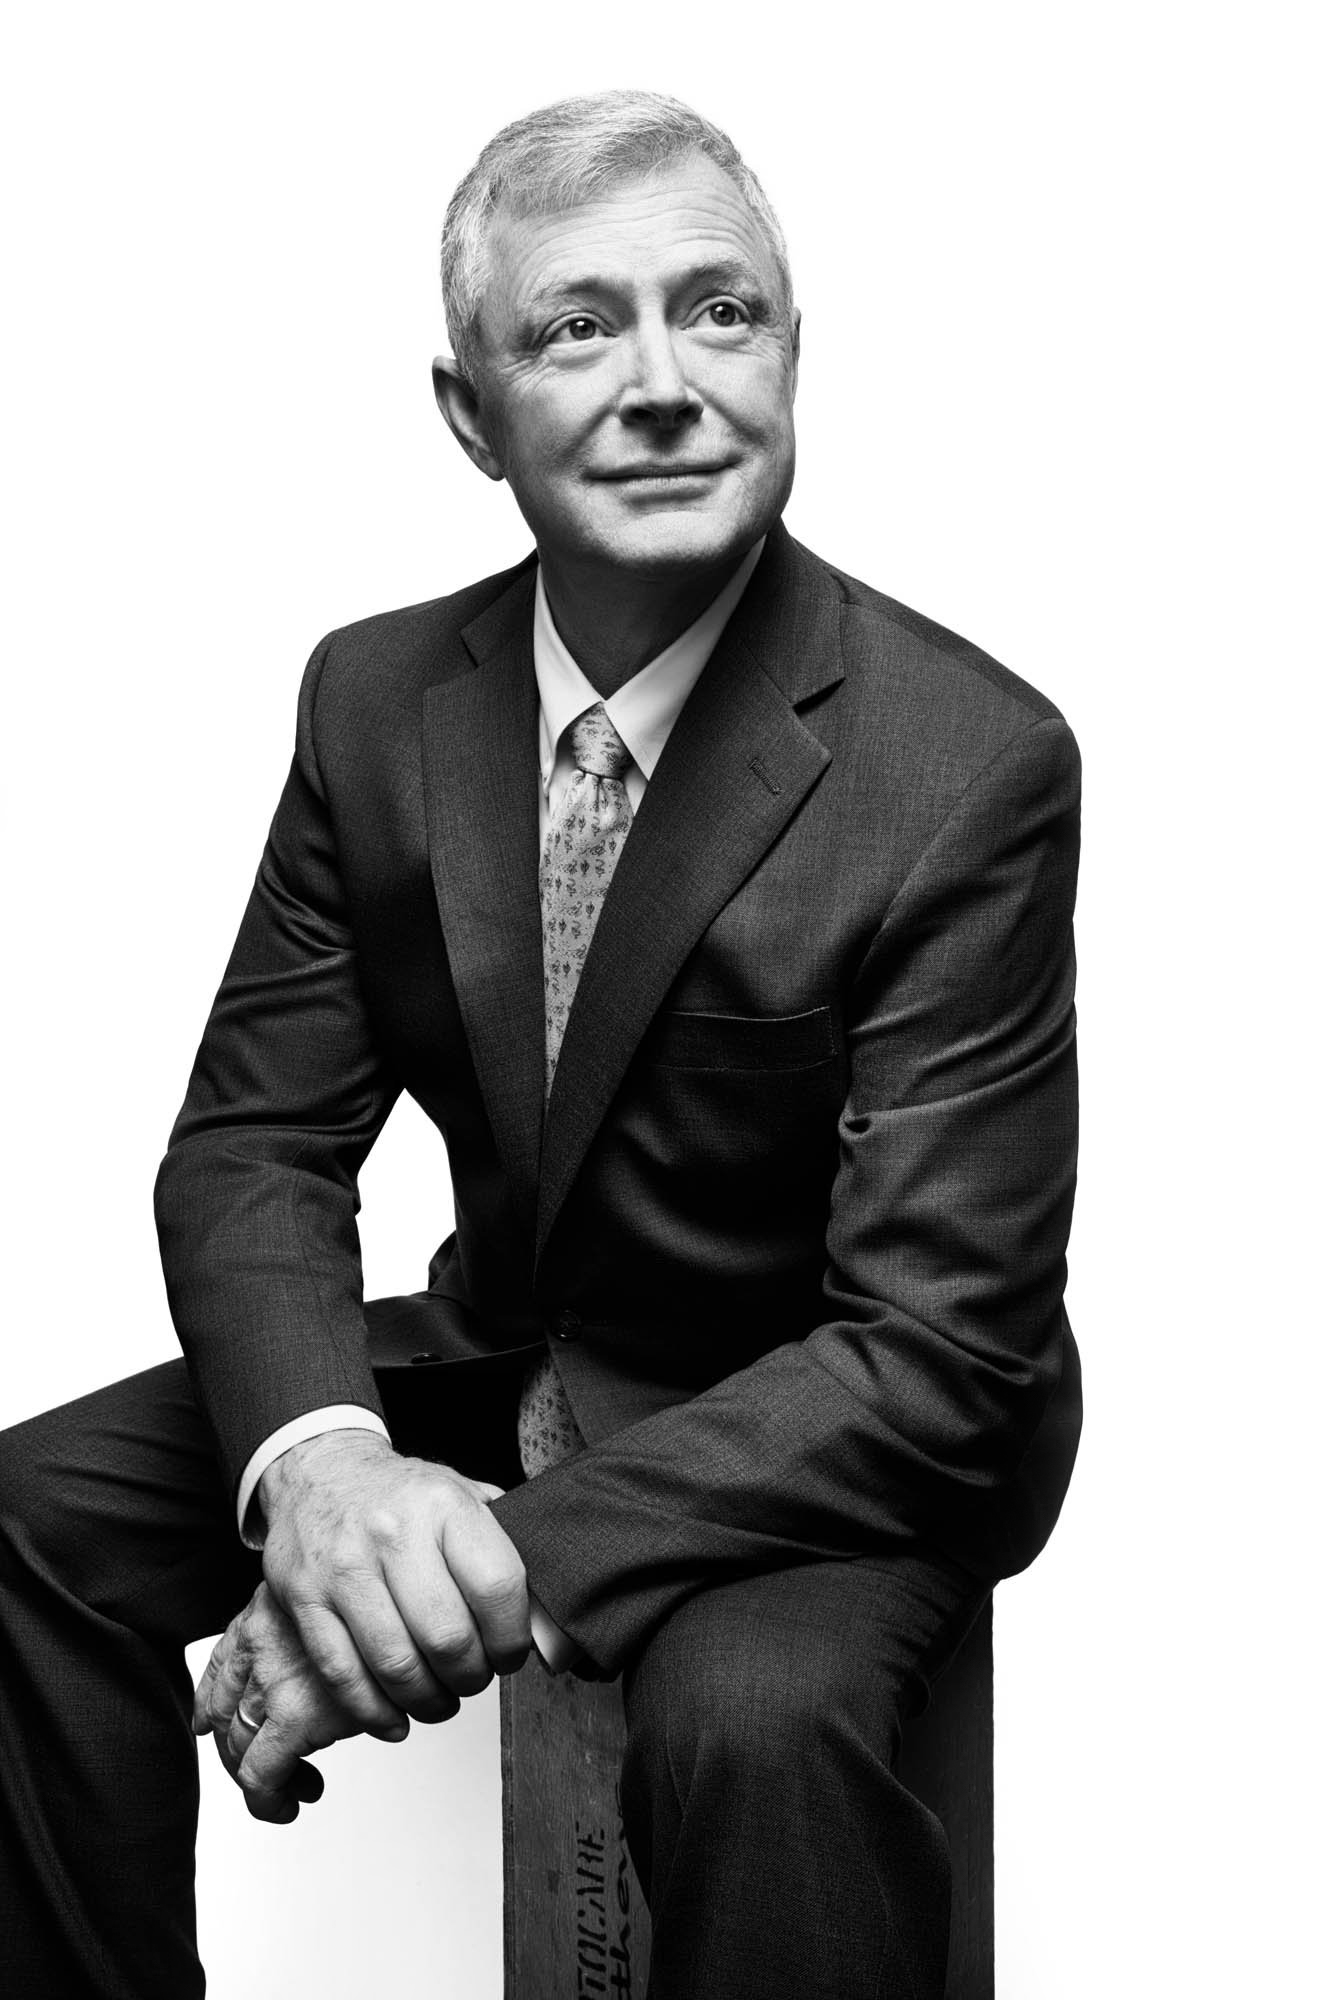 Portrait of a professional man sitting on a box with suit - portrait photography